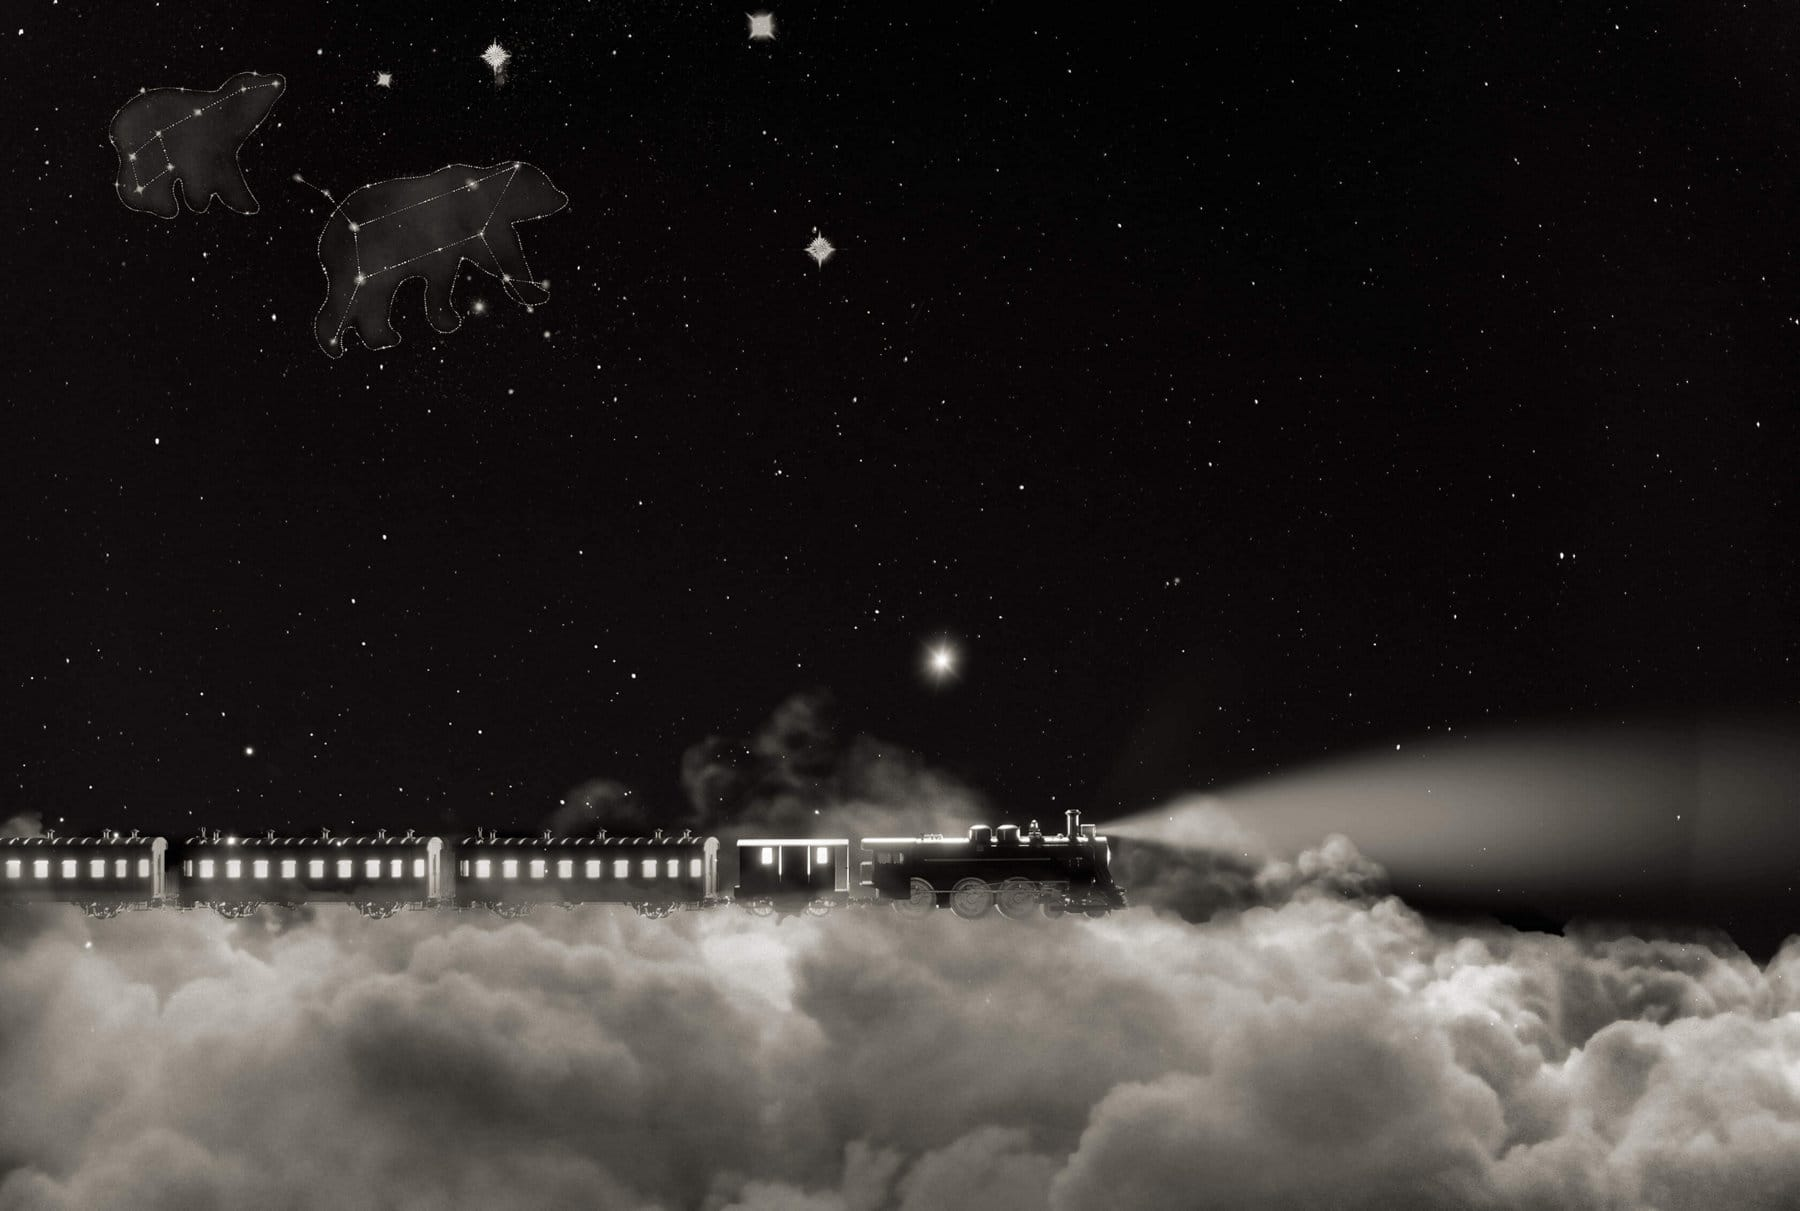 A quote from David Yurman in white on a starry night sky with bear-shaped constellations and a train traveling on a white cloud.